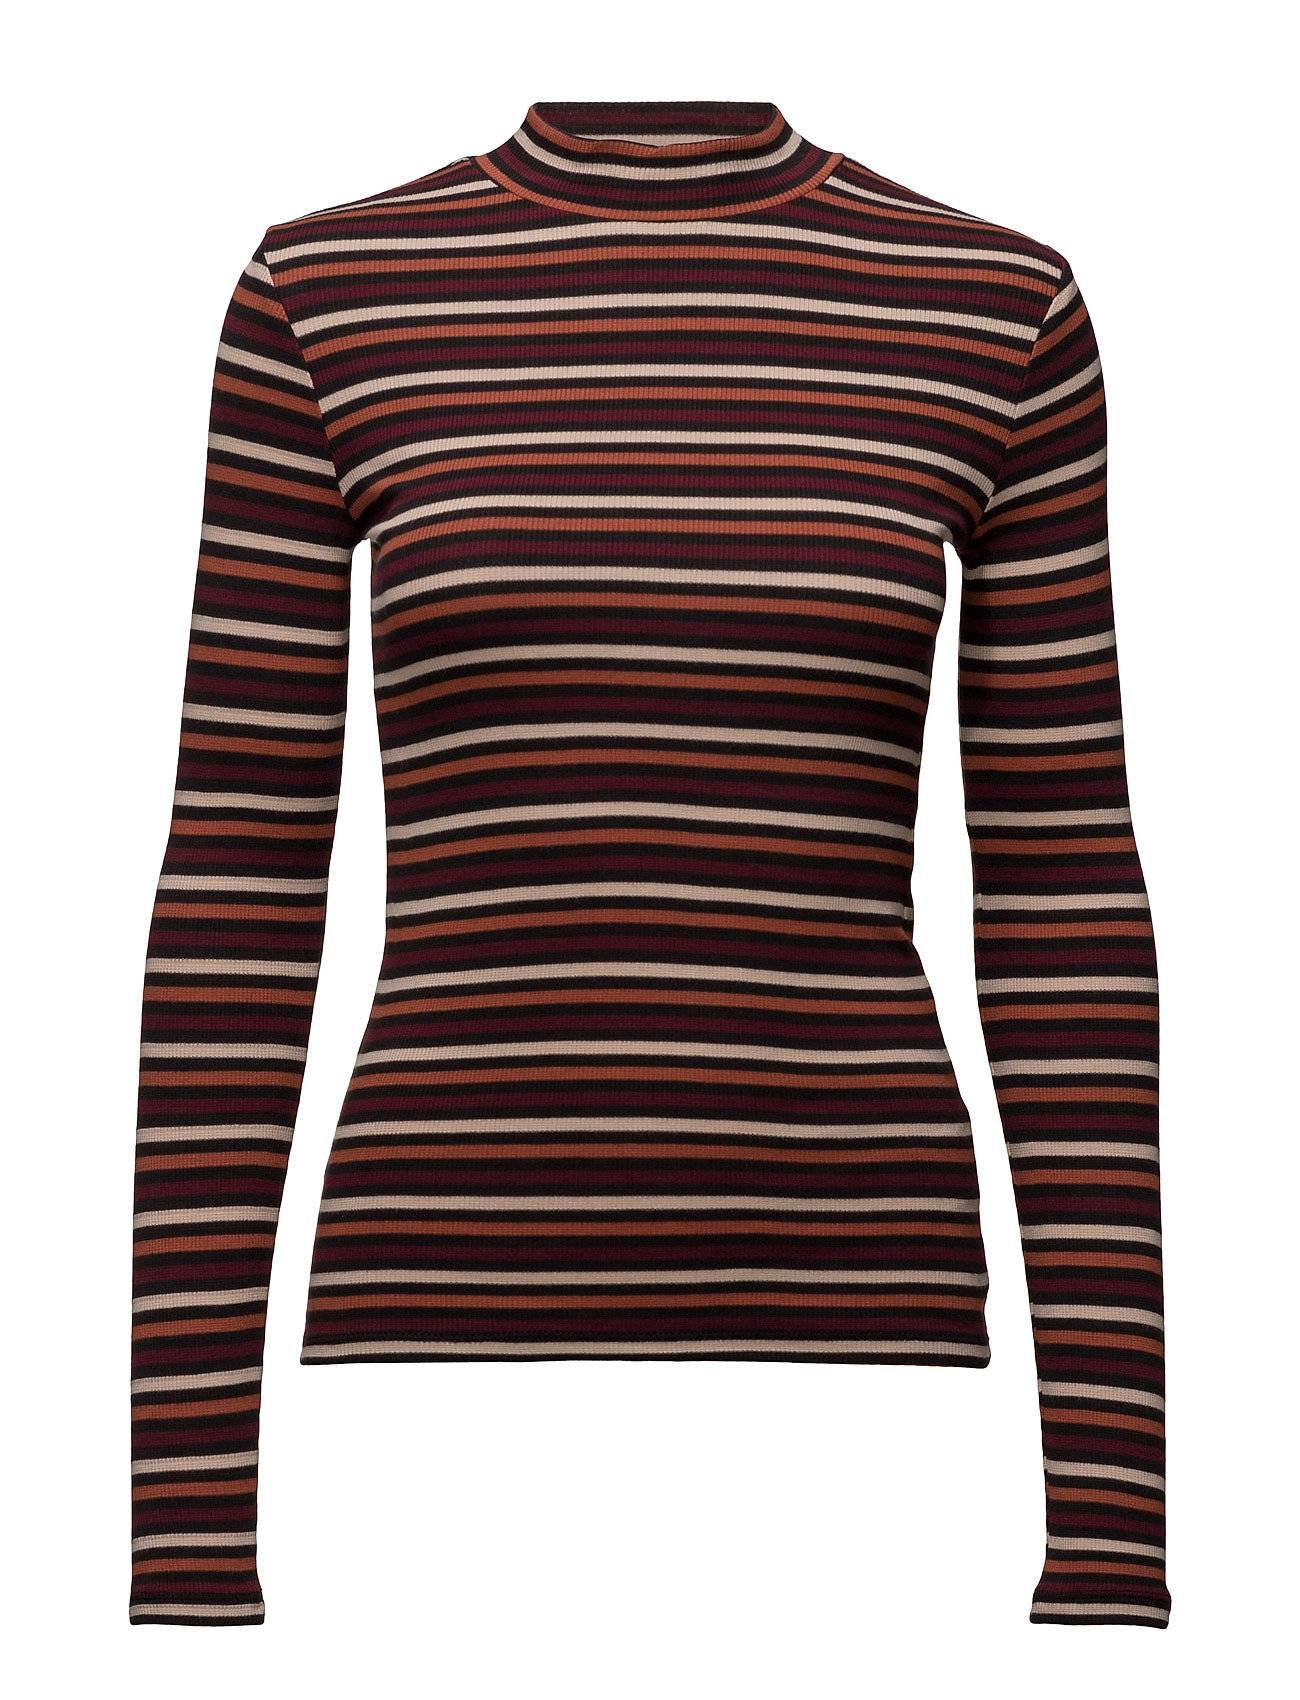 Lee Jeans High Neck Tee Tawny Port